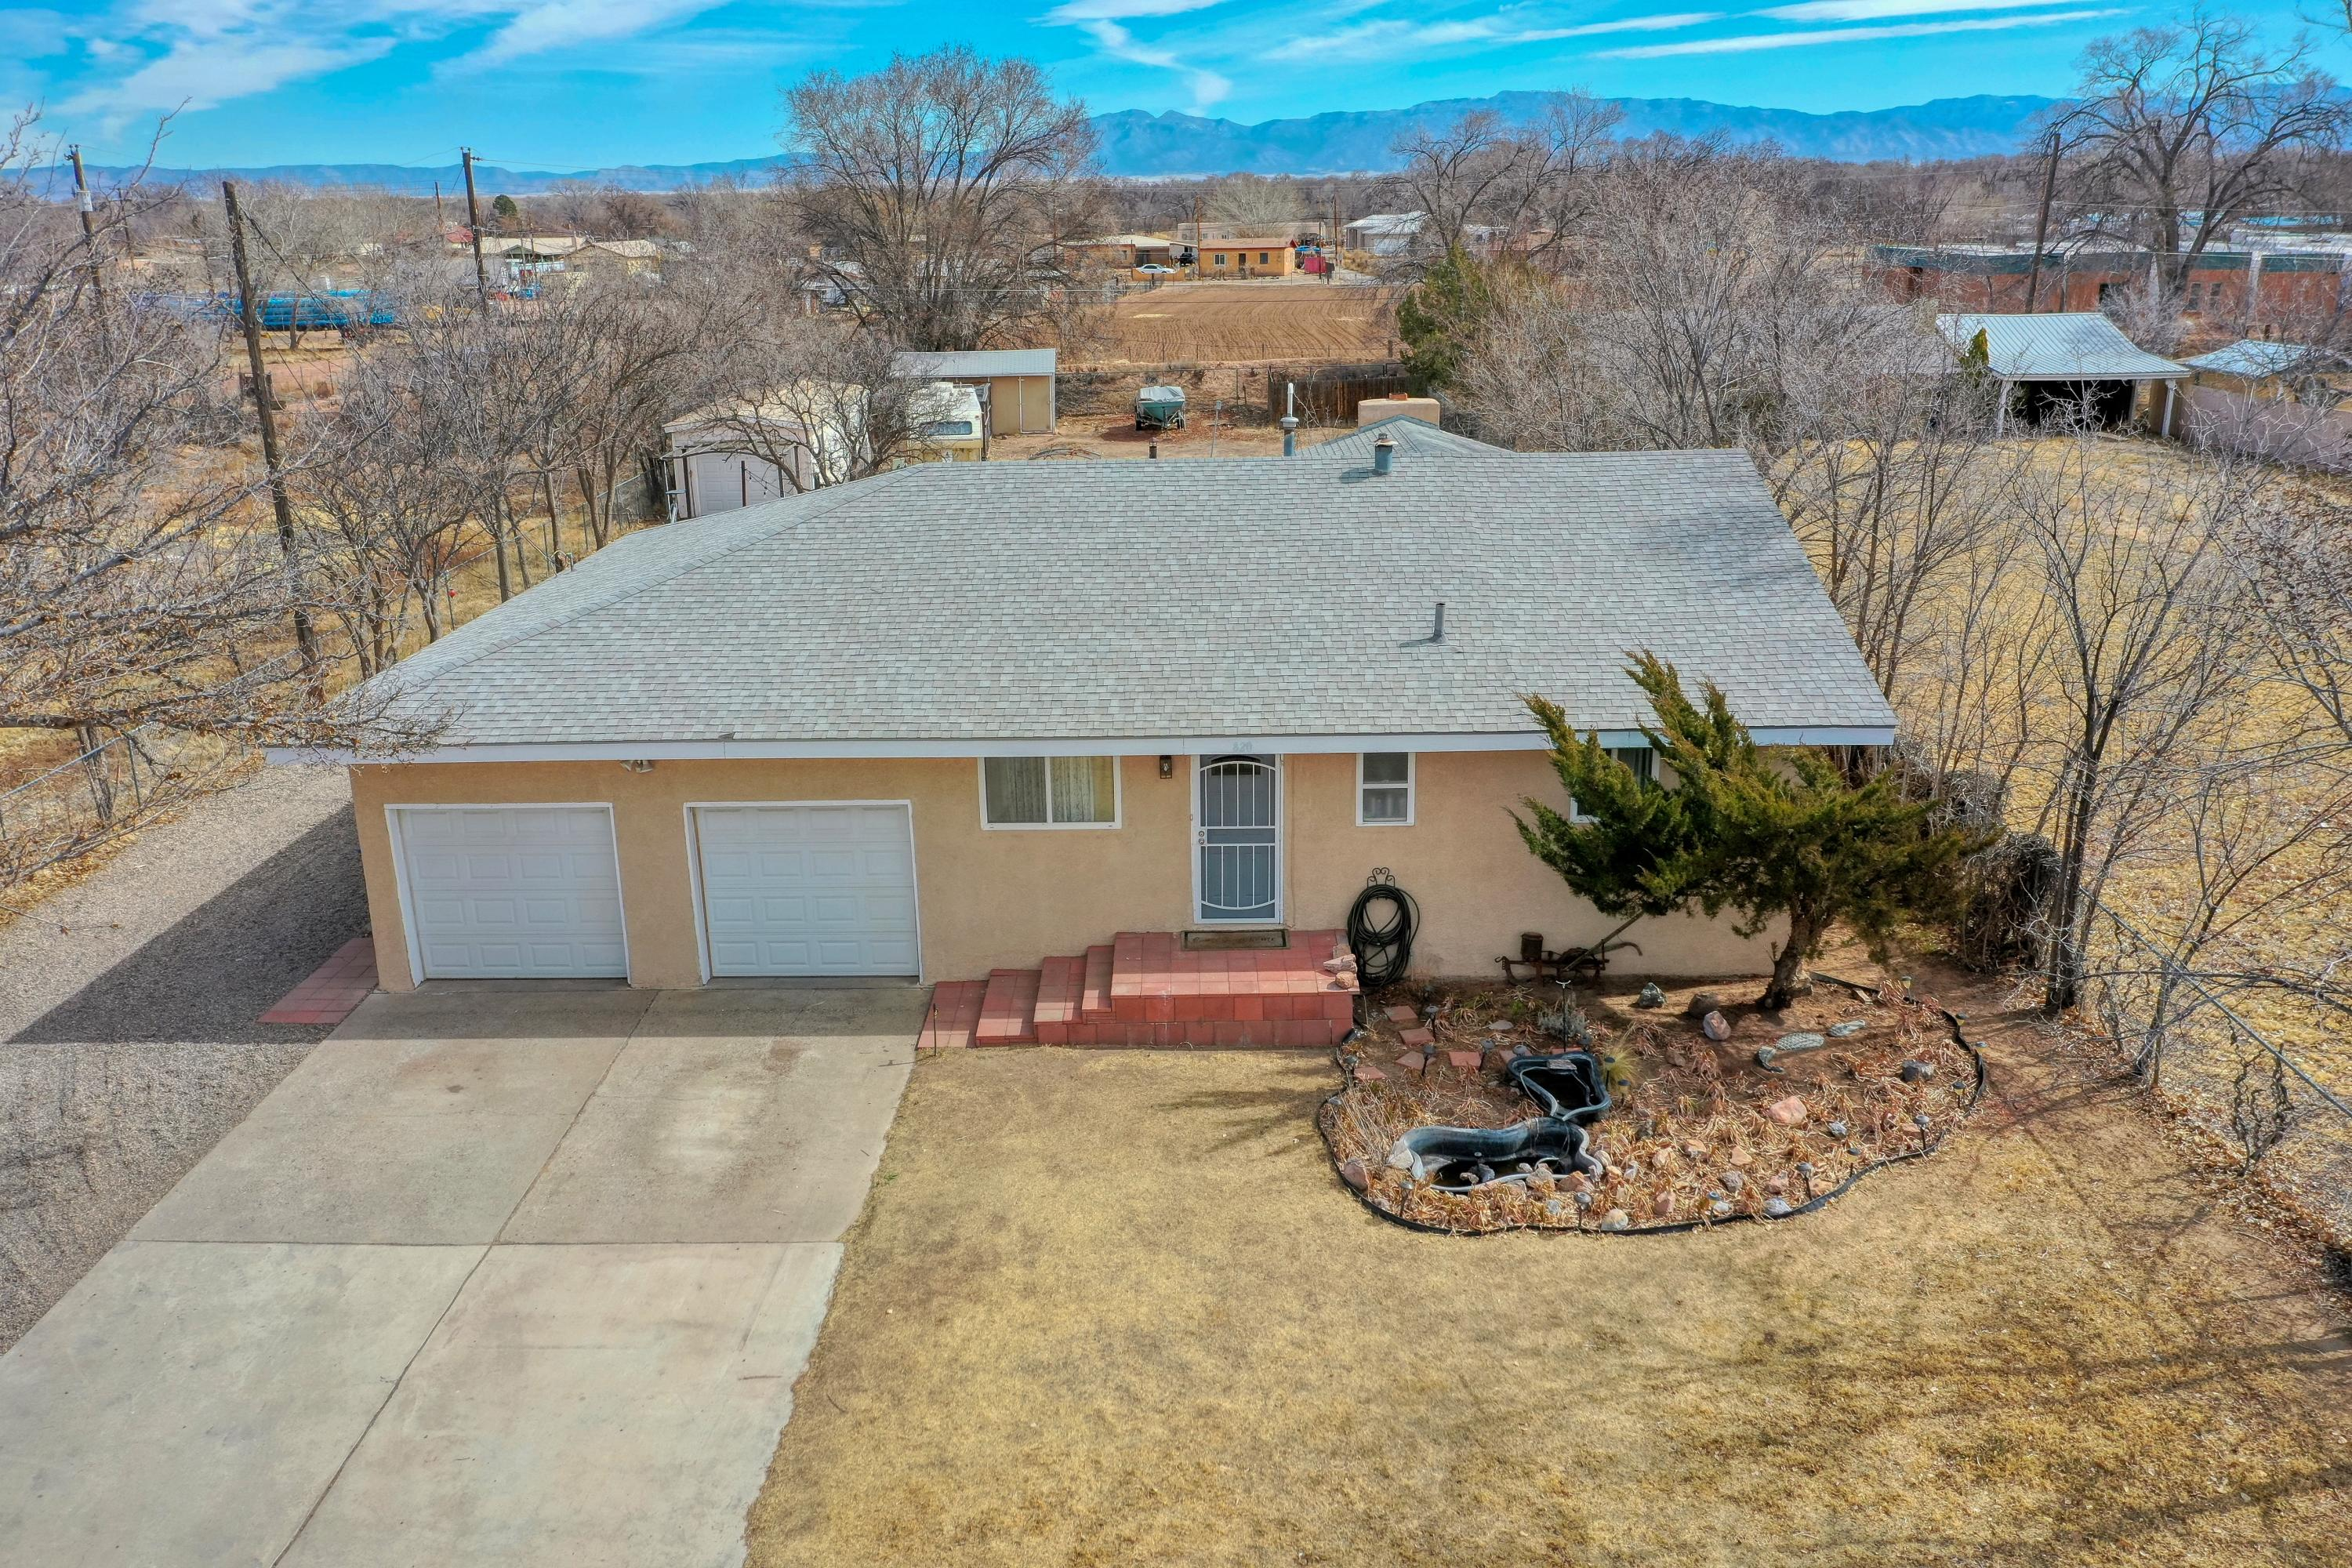 Welcome home to country living within Los Lunas village limits and close to shopping and restaurants!  This charming home sits on approximately 0.42 of an acre lot.  Refrigerated air, 2 car garage is attached and 1 detached garage in backyard.  Fully fenced with backyard access. Recently upgraded kitchen includes new oak wood cabinetry, granite countertops, Bosch stainless steel appliances and huge walk in pantry! Love the outdoors? Step outside kitchen to large covered porch leading to huge backyard, lots of fruit trees and so many possibilities for country living with ample space and outbuildings including a greenhouse!